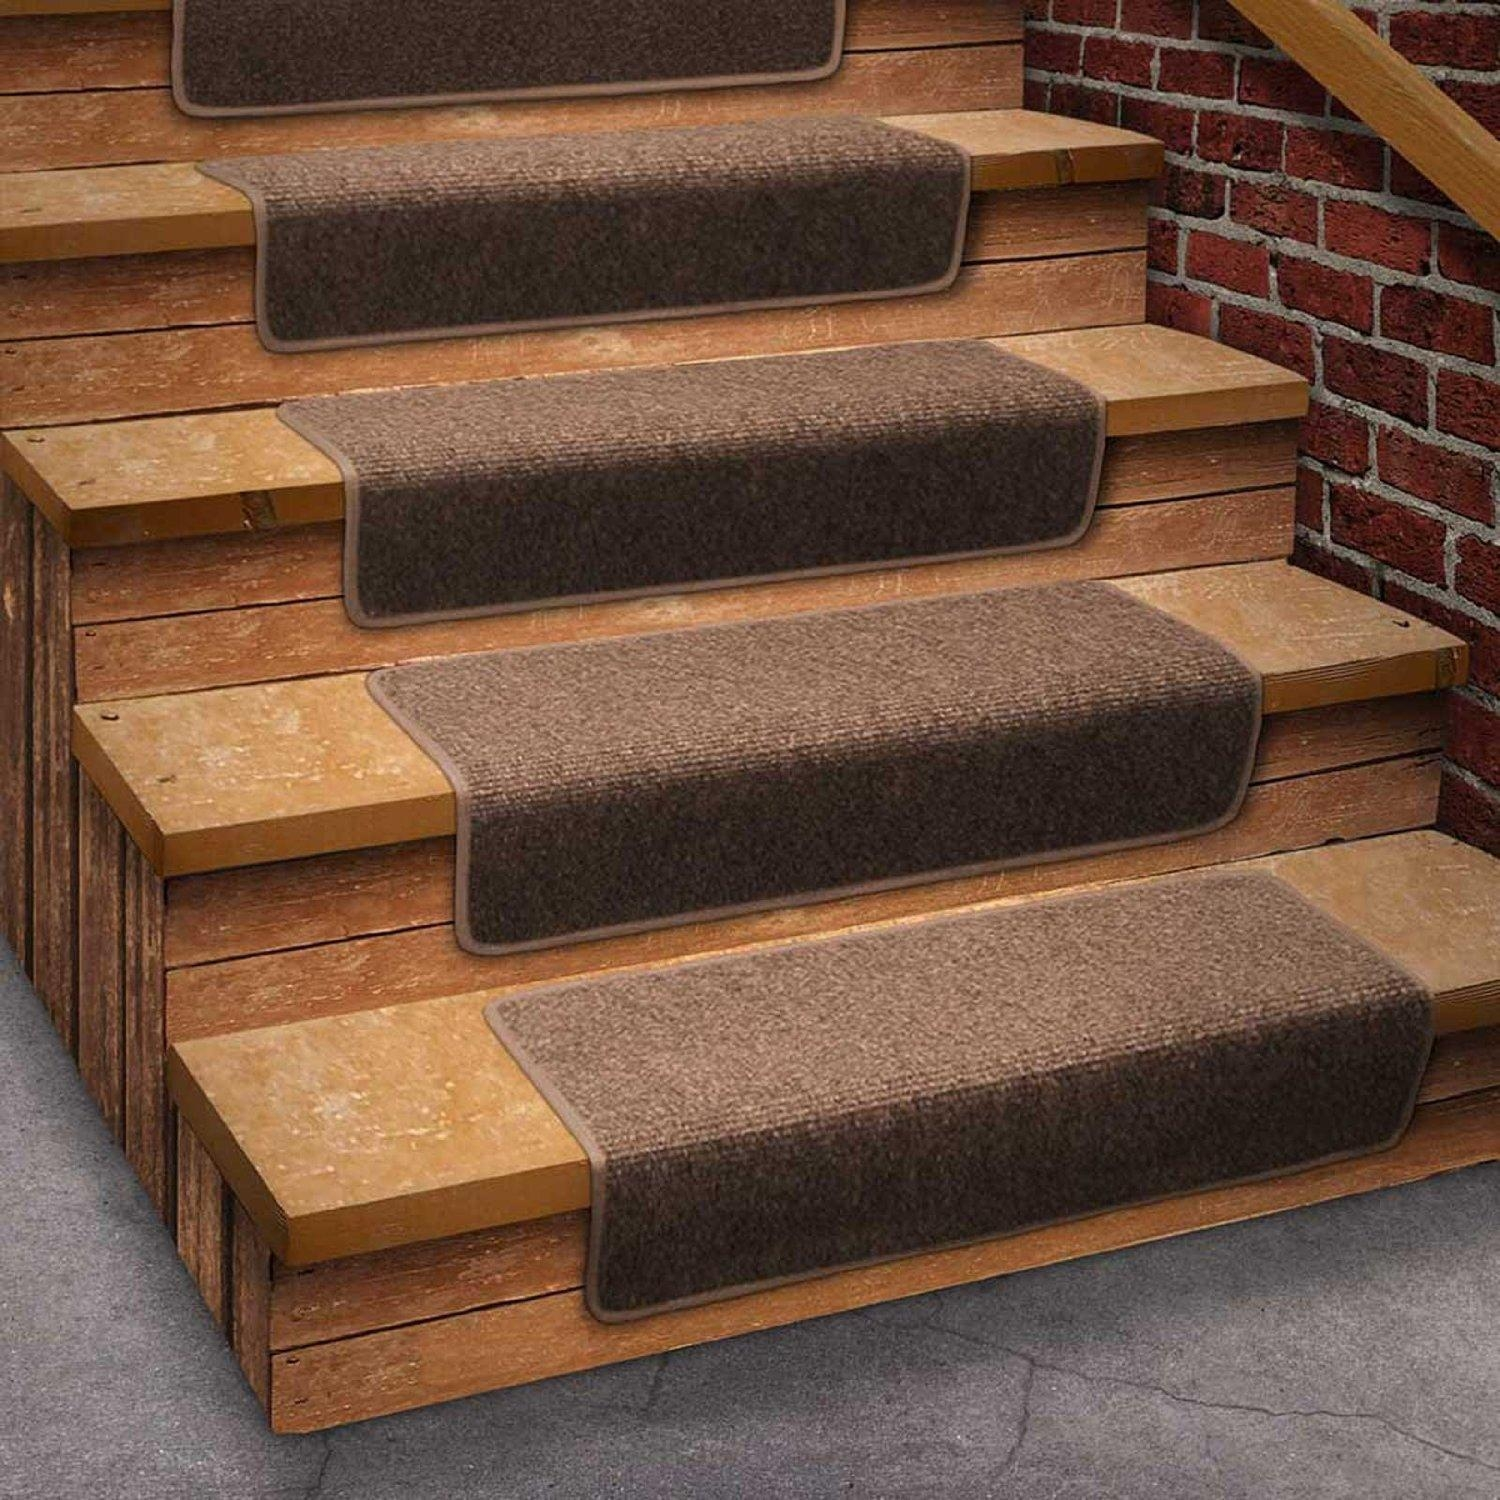 Inspiration about Using Carpet Stair Treads For Safety Reasons Vwho Pertaining To Stair Tread Carpet Covers (#16 of 20)